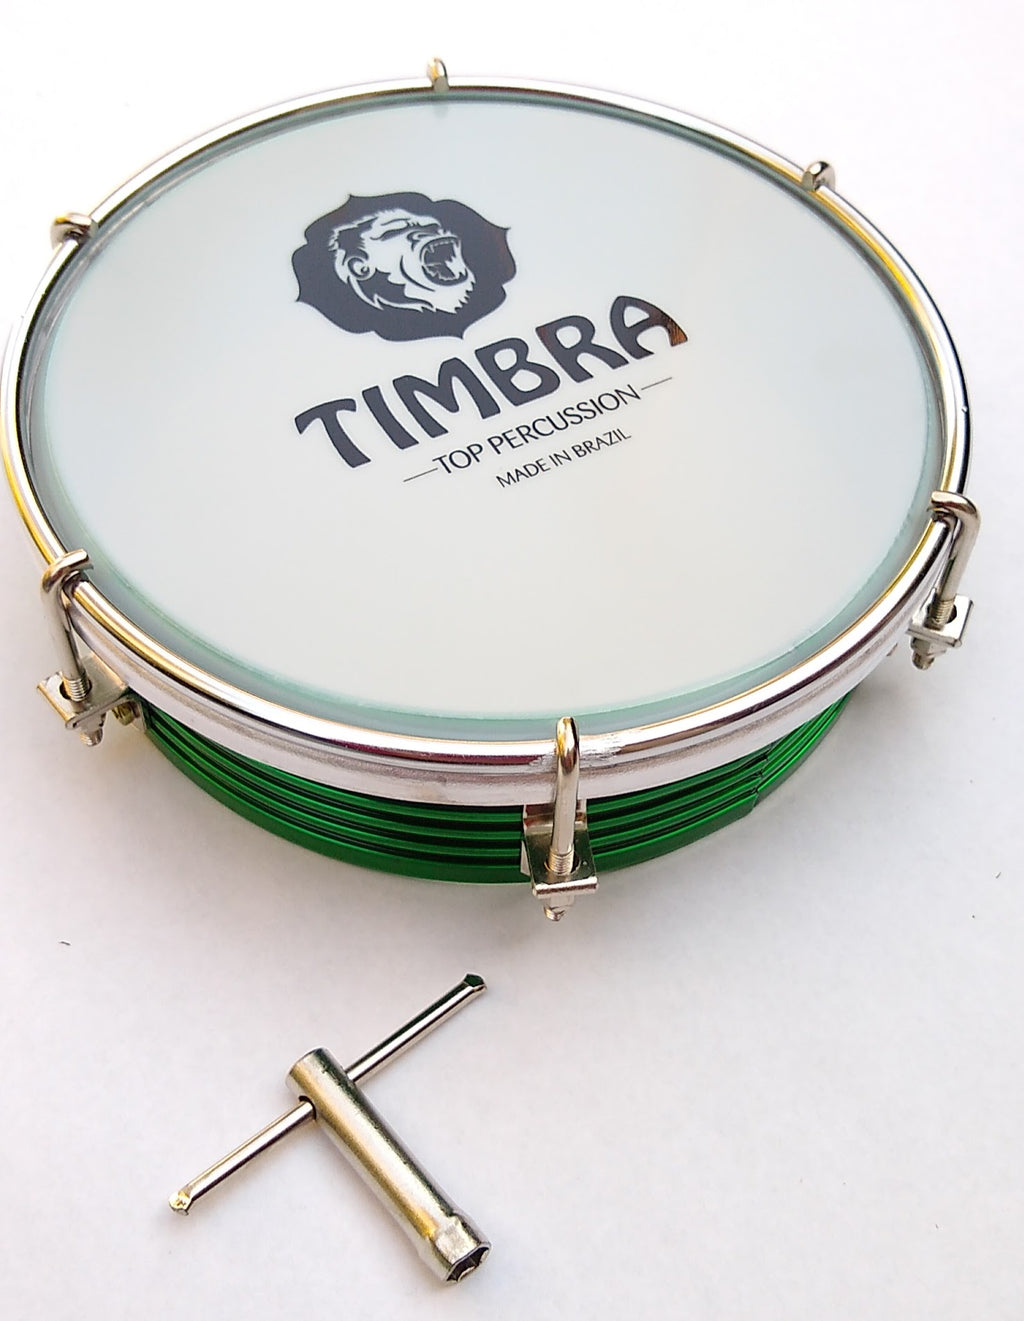 Green shell tamborim with a white head and Timbra logo. Silver drum key and hardware on a white background